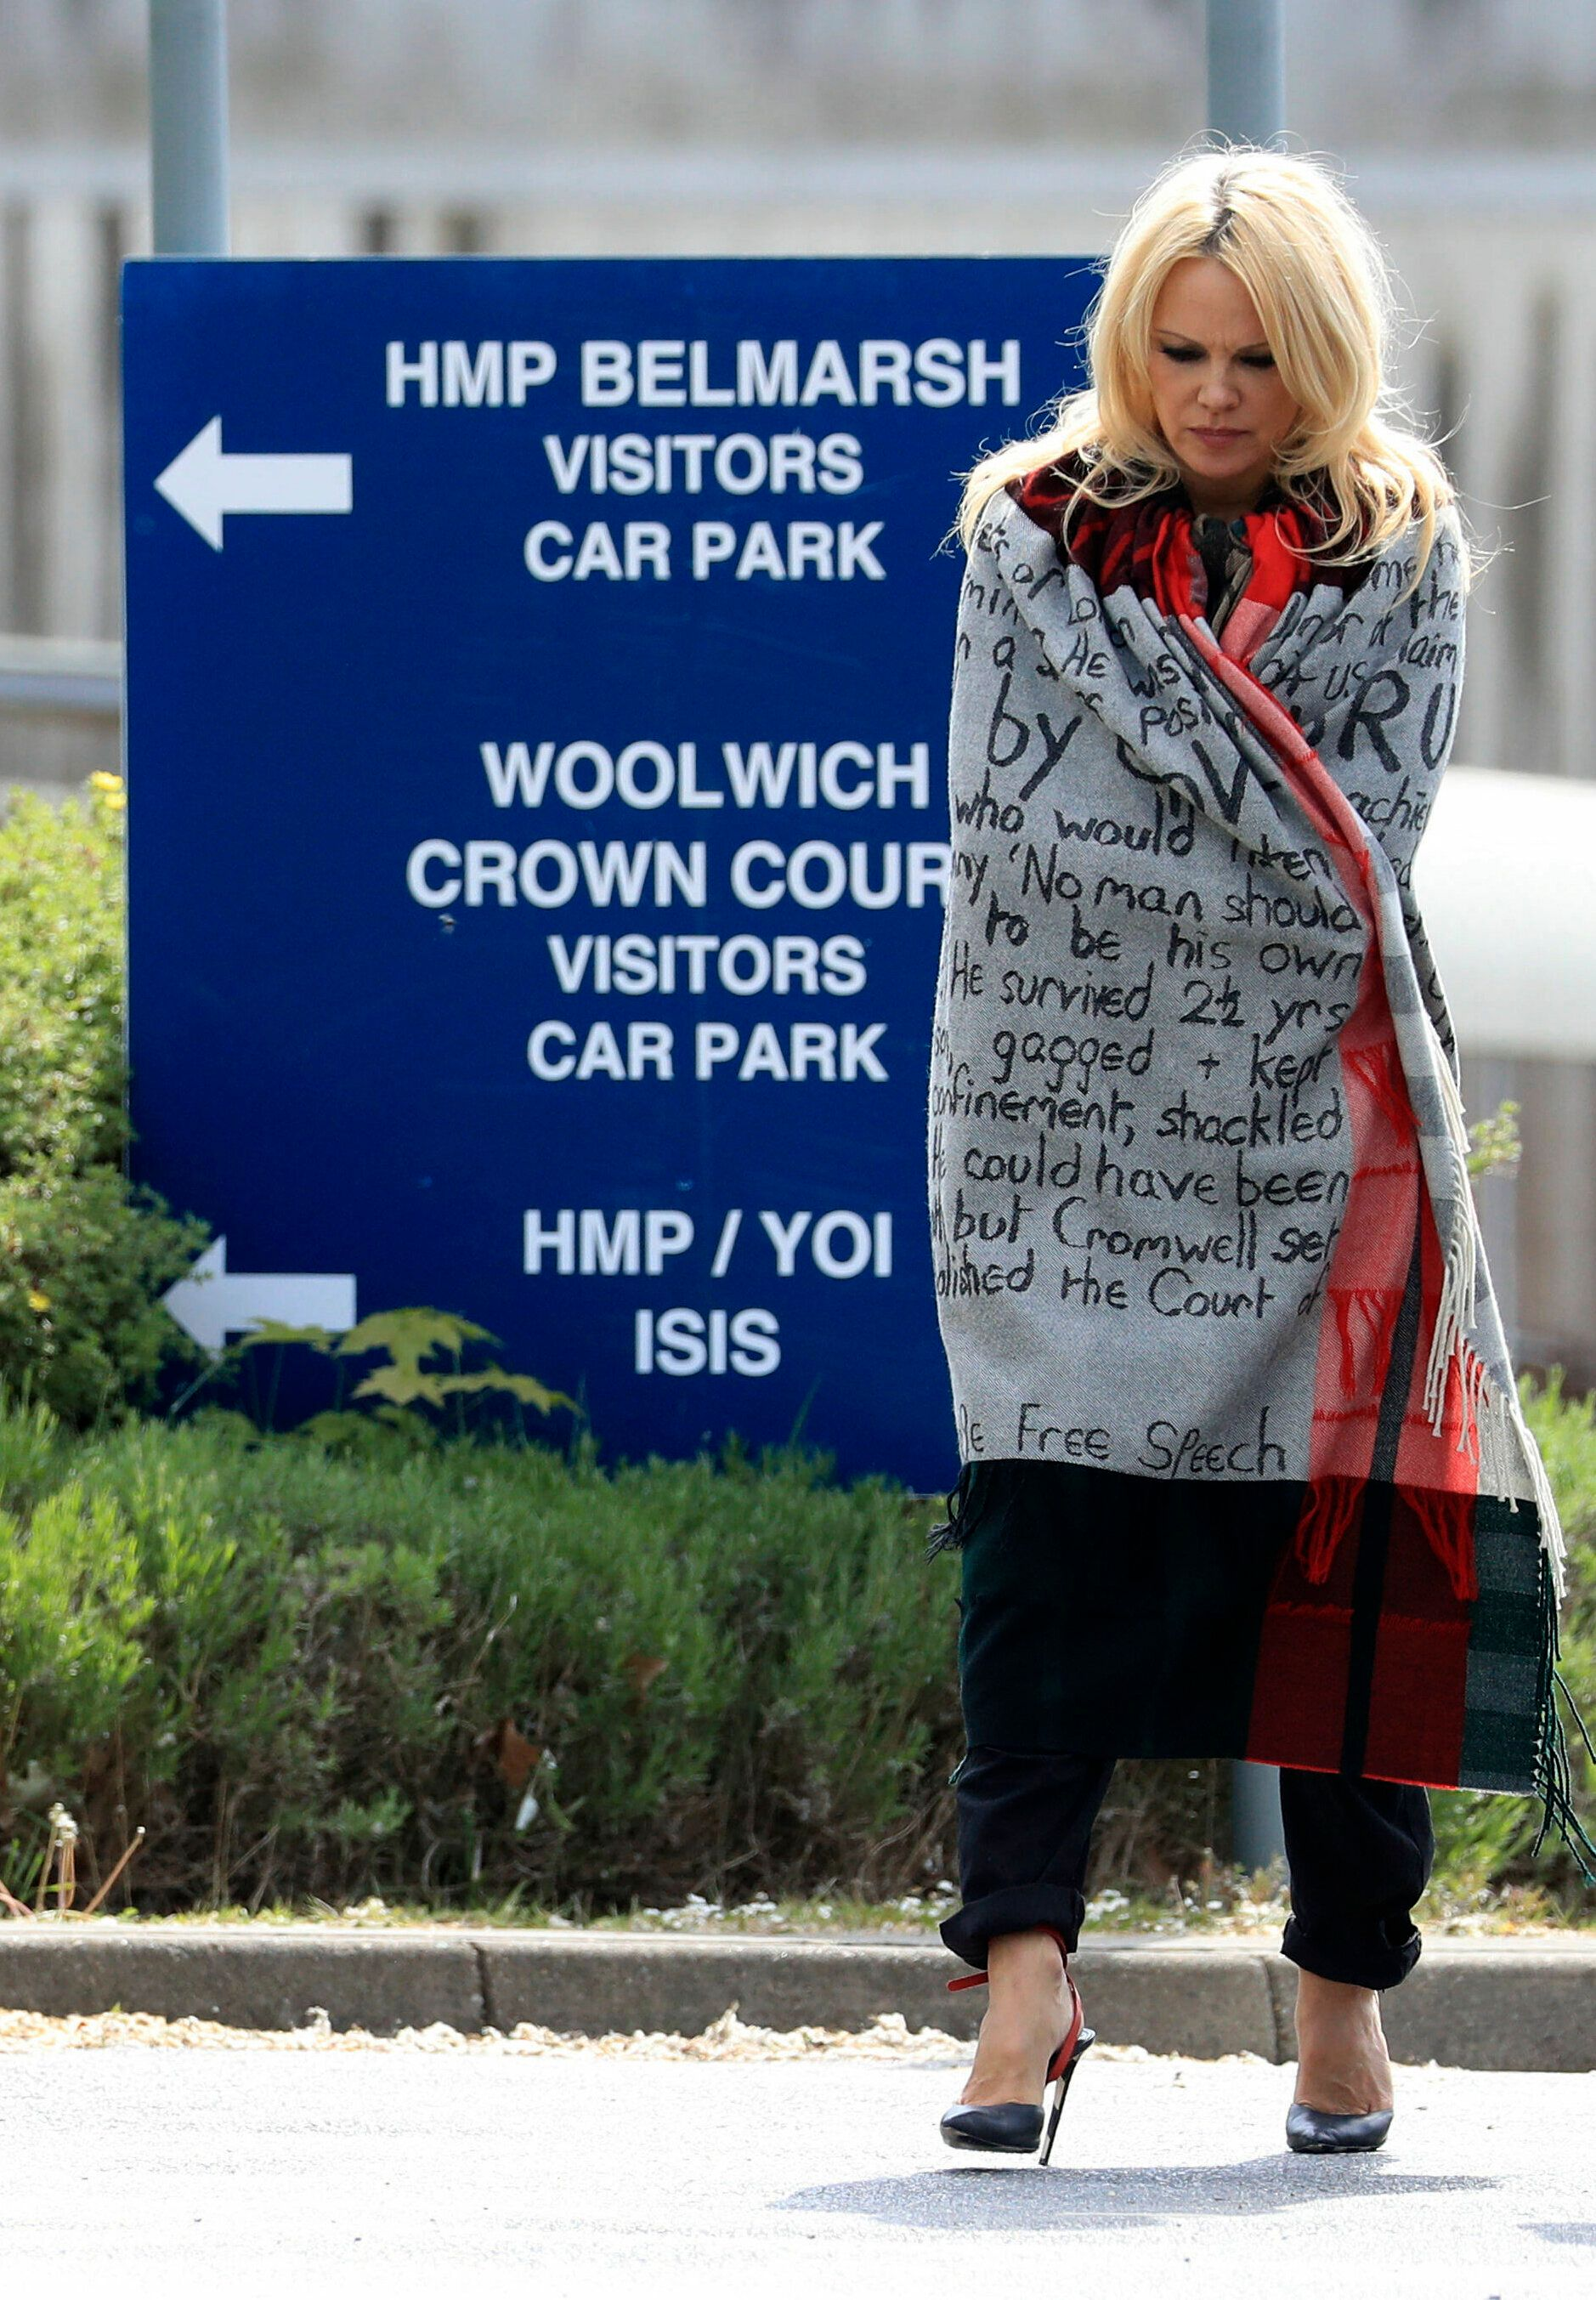 US actress Pamela Anderson leaves Belmarsh Prison in south-east London, after visiting WikiLeaks founder Julian Assange, Tuesday May 7, 2019. (Gareth Fuller/PA via AP)